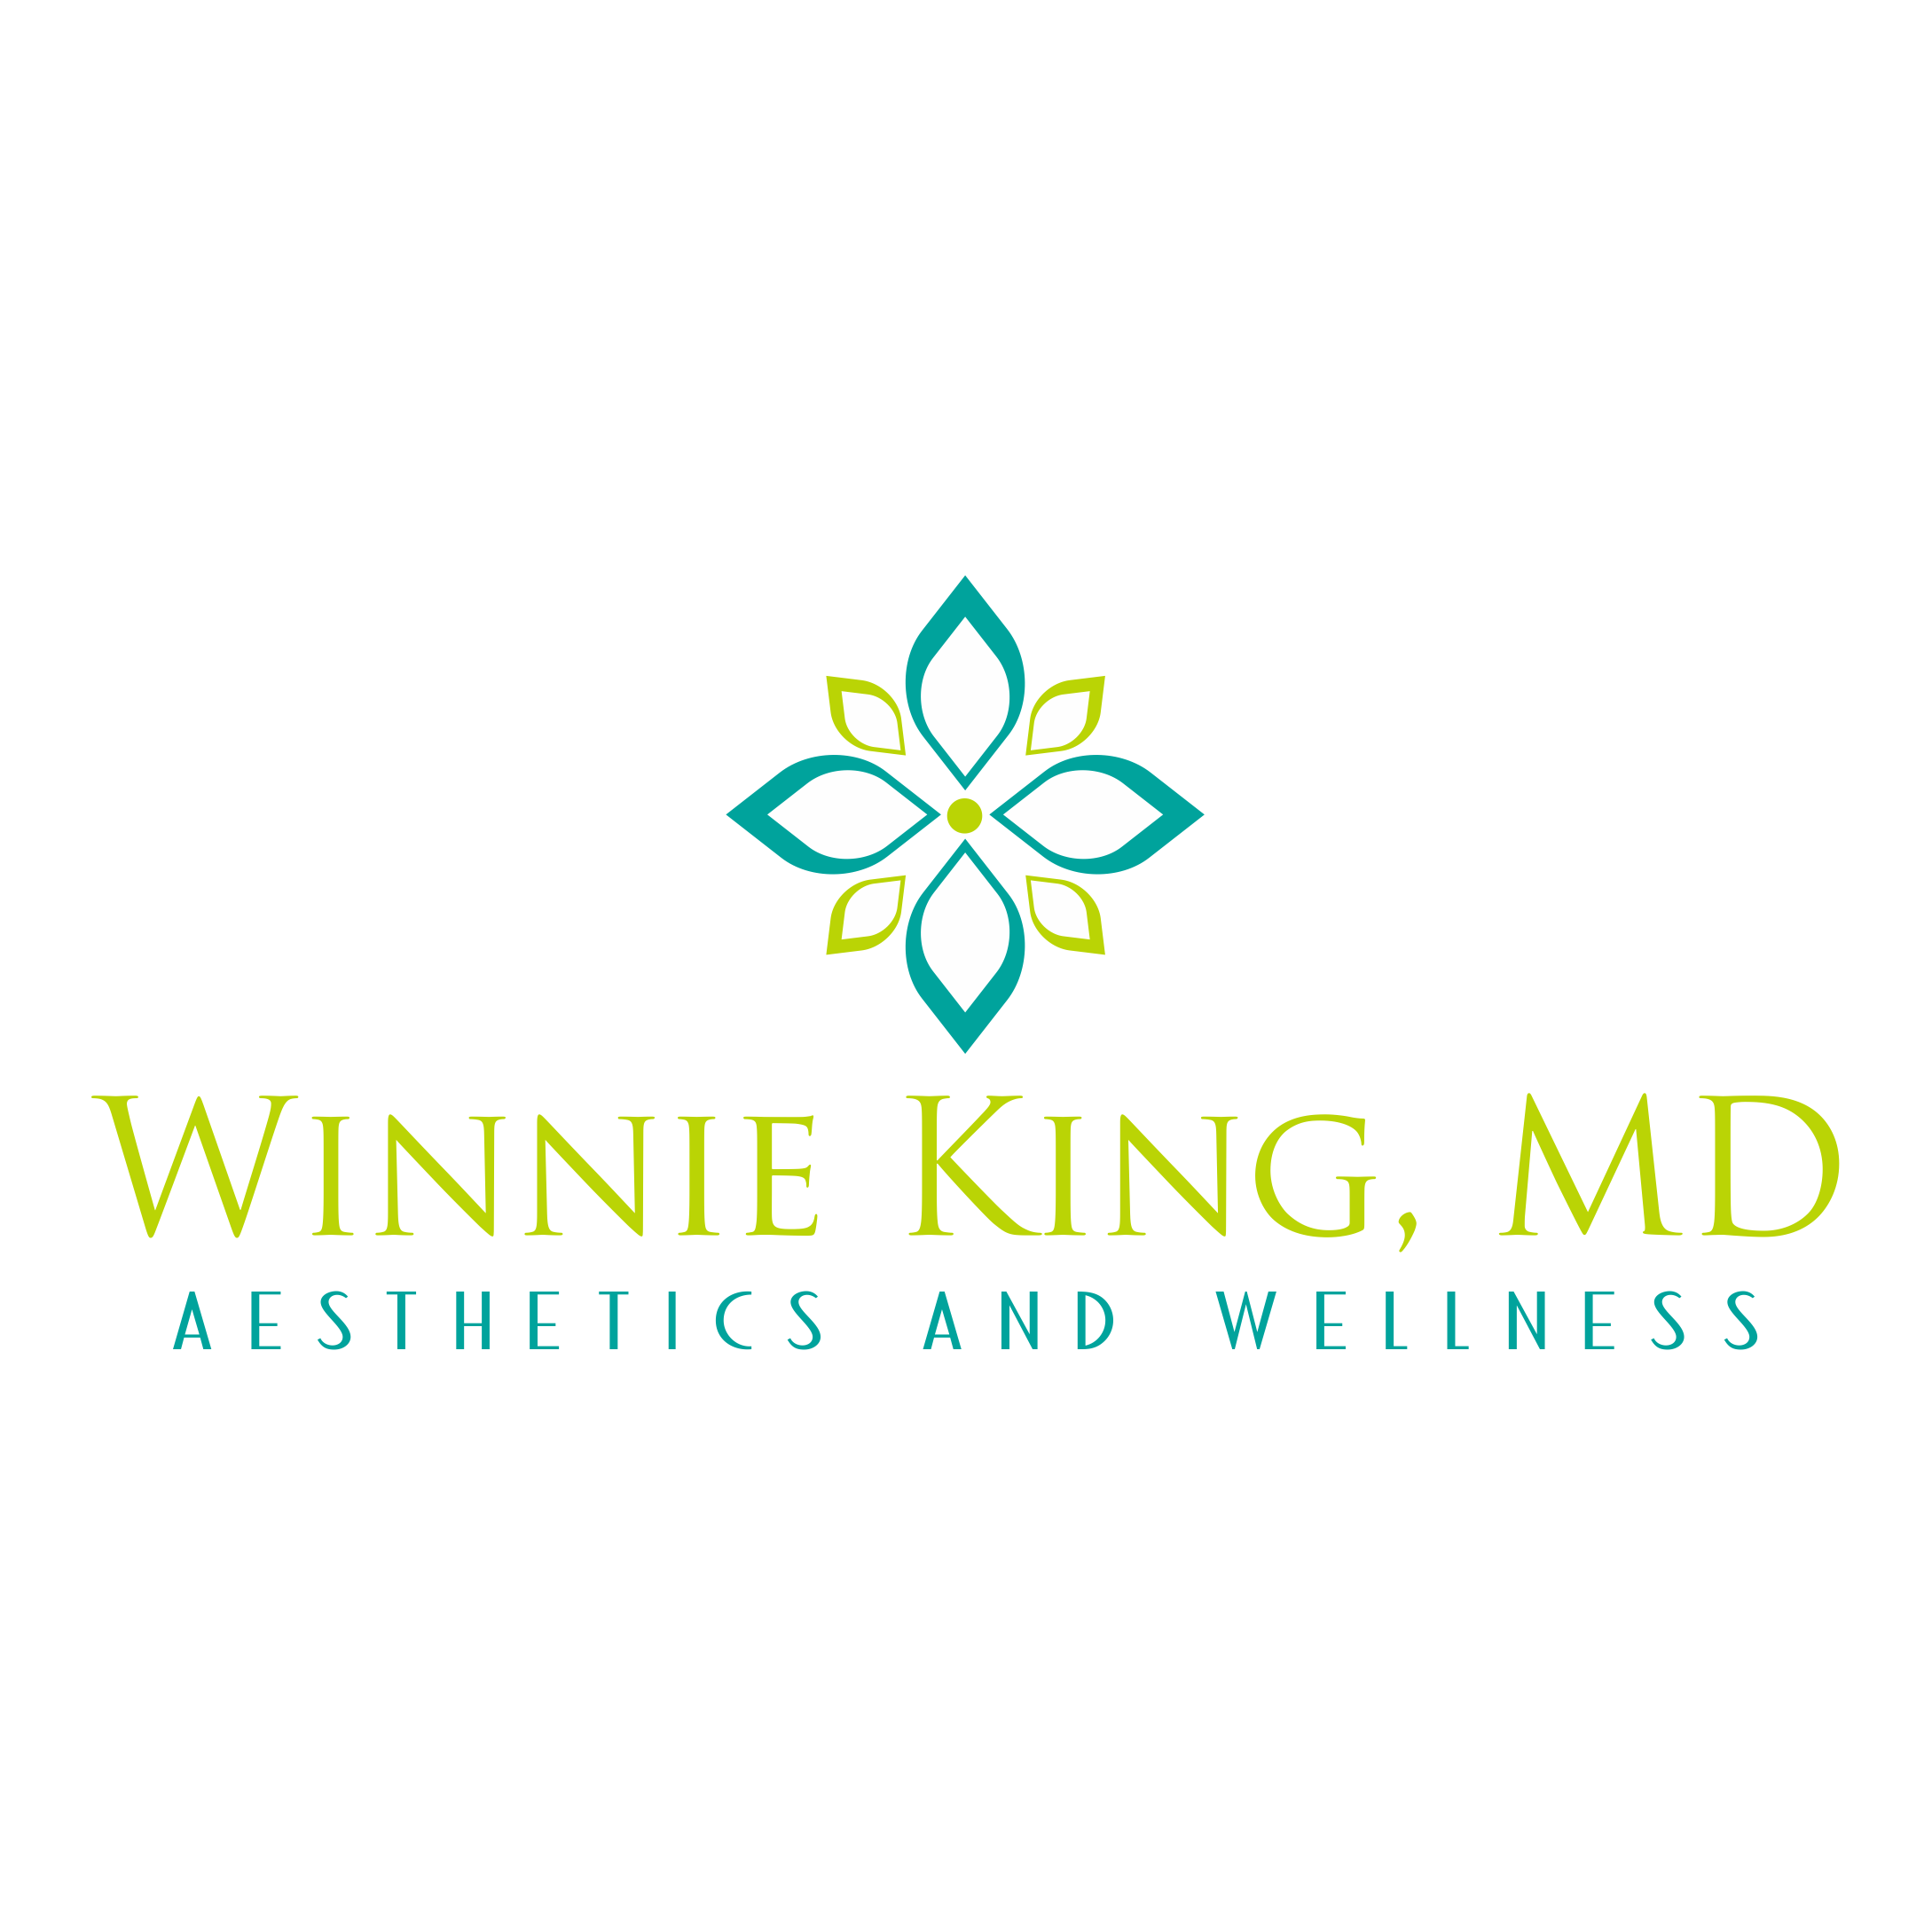 Winnie King, MD Aesthetics and Wellness image 0